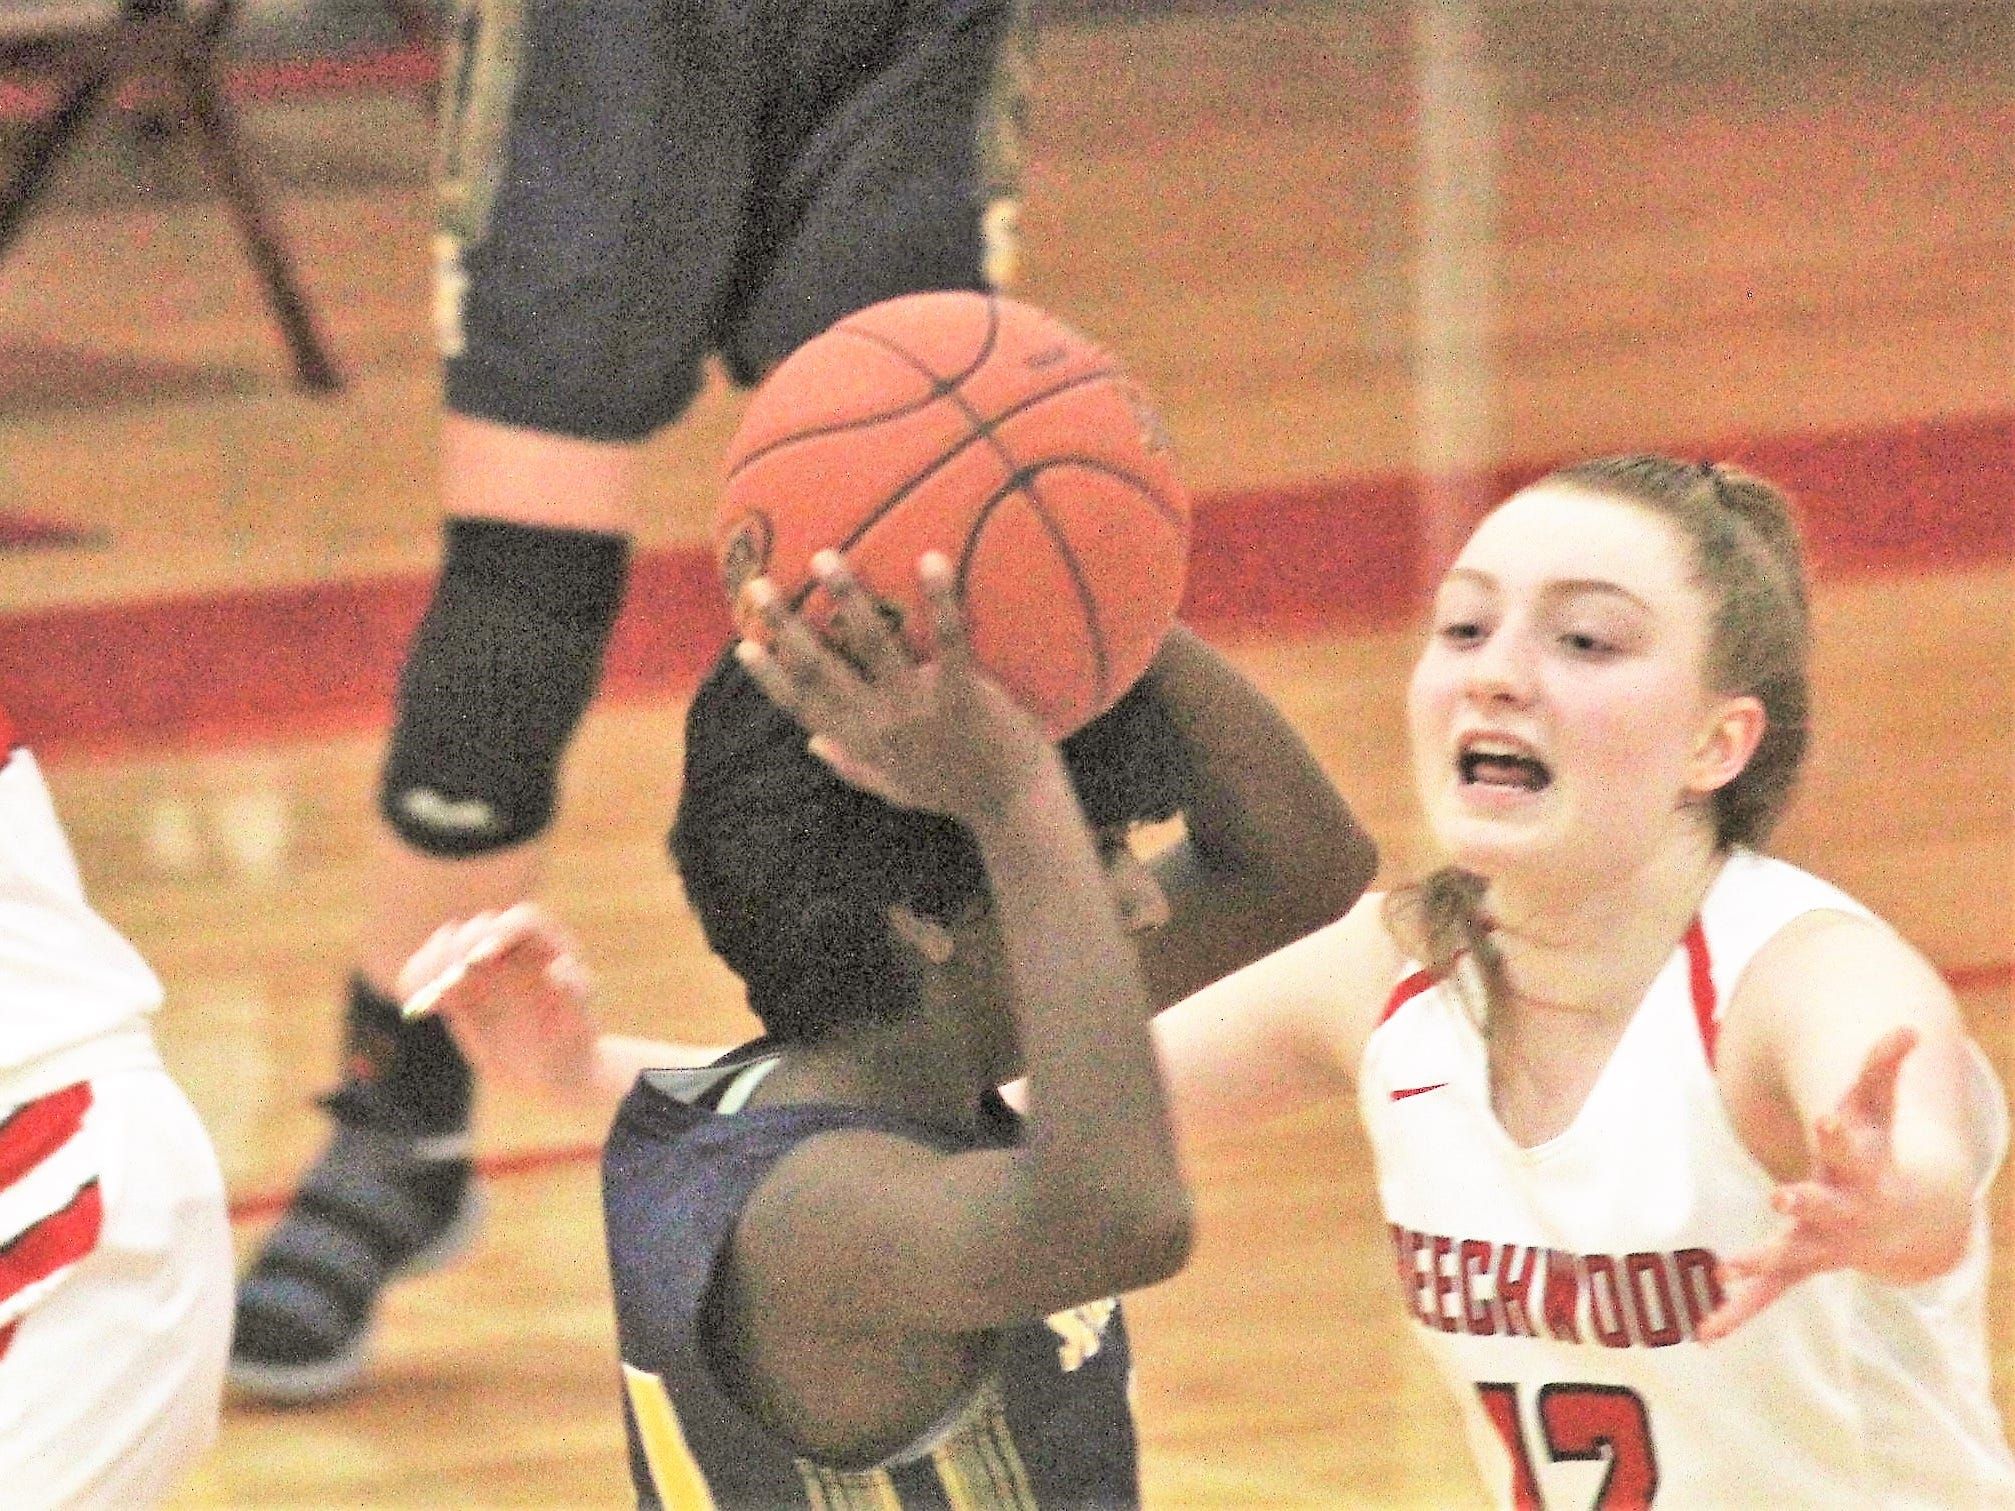 Beechwood sophomore Carlie Arlinghaus pressures Priya Jenkins of Seven Hills as Beechwood beat Seven Hills 57-54 in girls basketball Jan. 15, 2019 at Beechwood HS, Fort Mitchell KY. Arlinghaus had 21 points in the win.